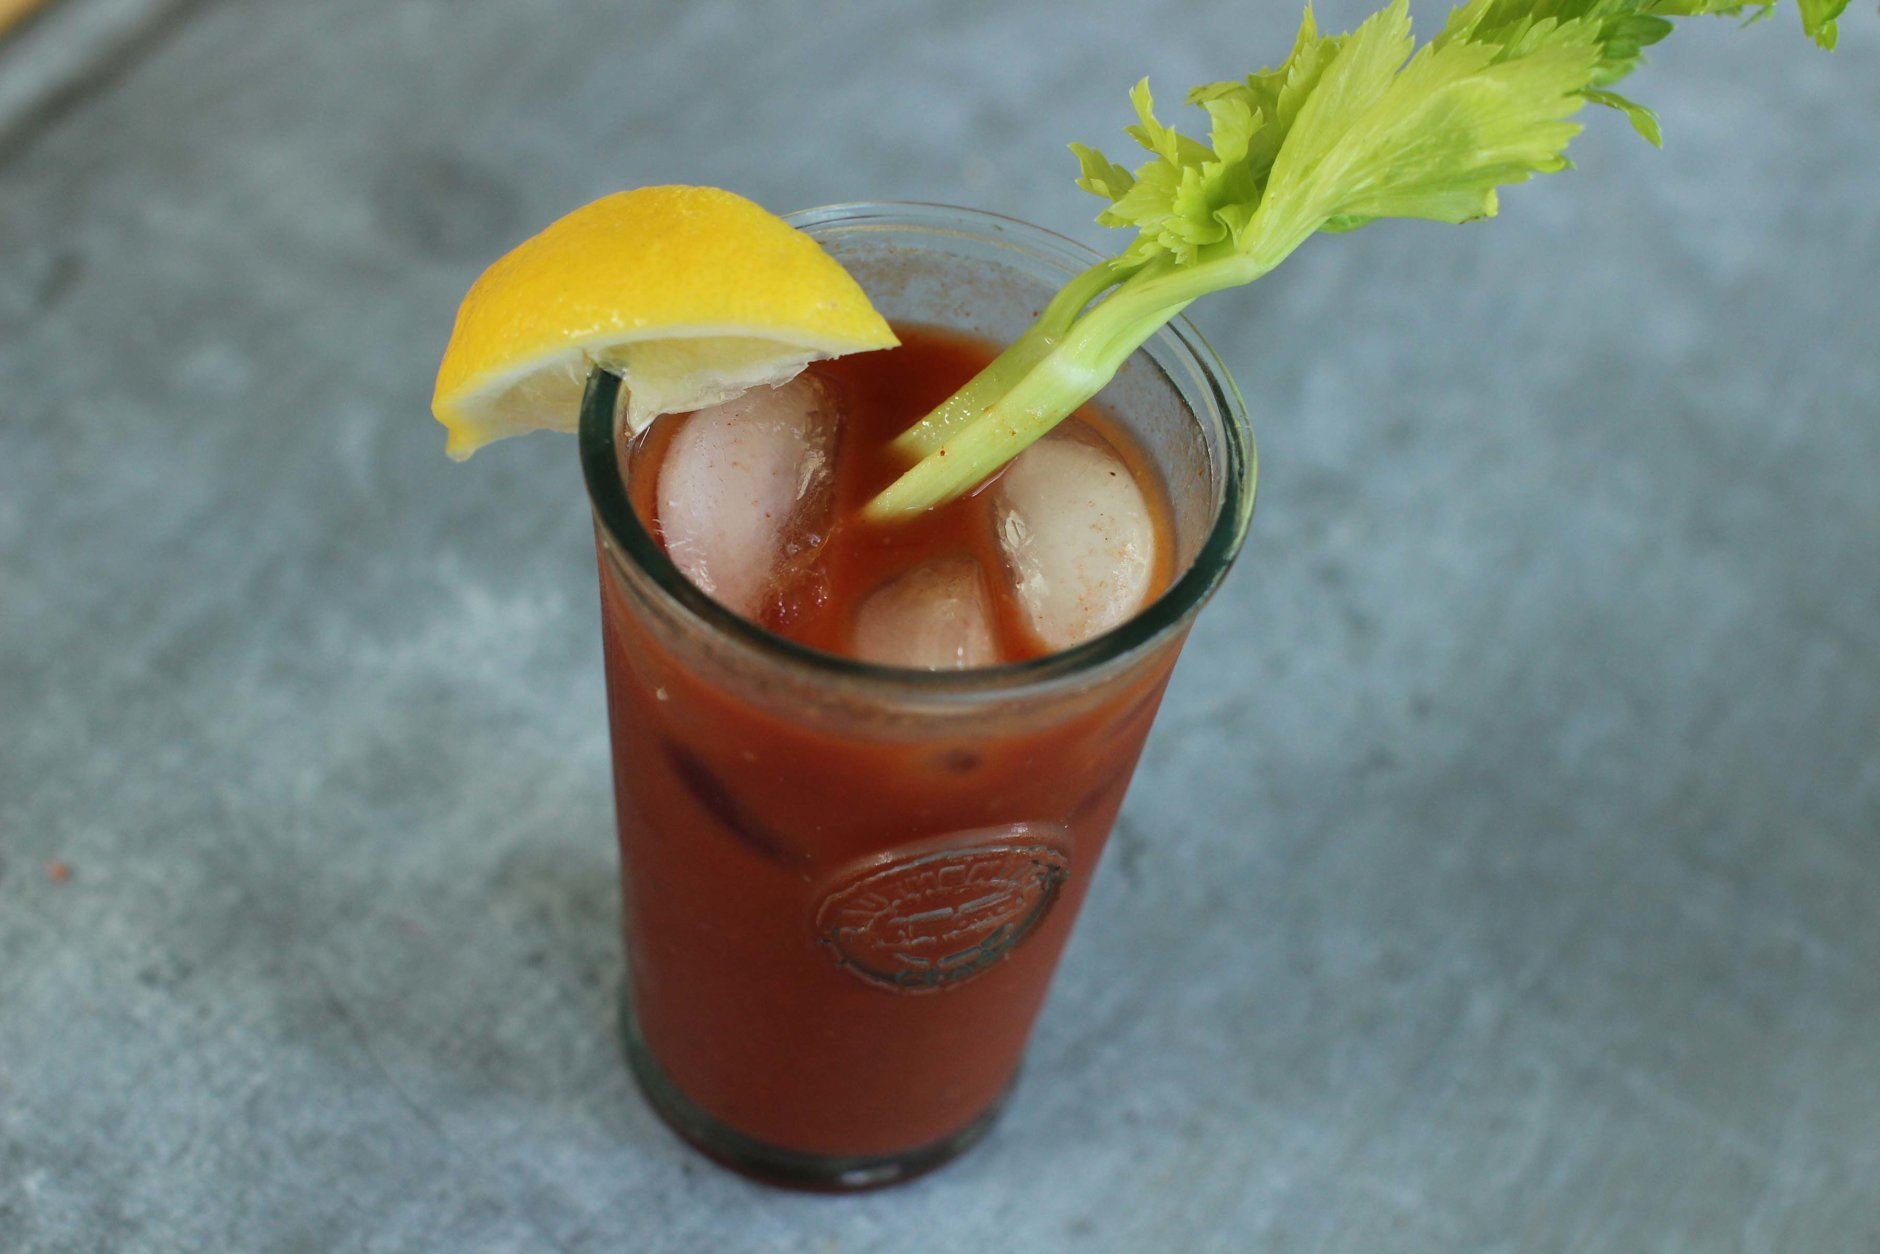 This June 22, 2015 photo shows a bloody Mary with Korean gochujang in Concord, N.H. Gochujang - a thick chili paste - is made from chili peppers, rice, fermented soy beans and salt. (AP Photo/Matthew Mead)